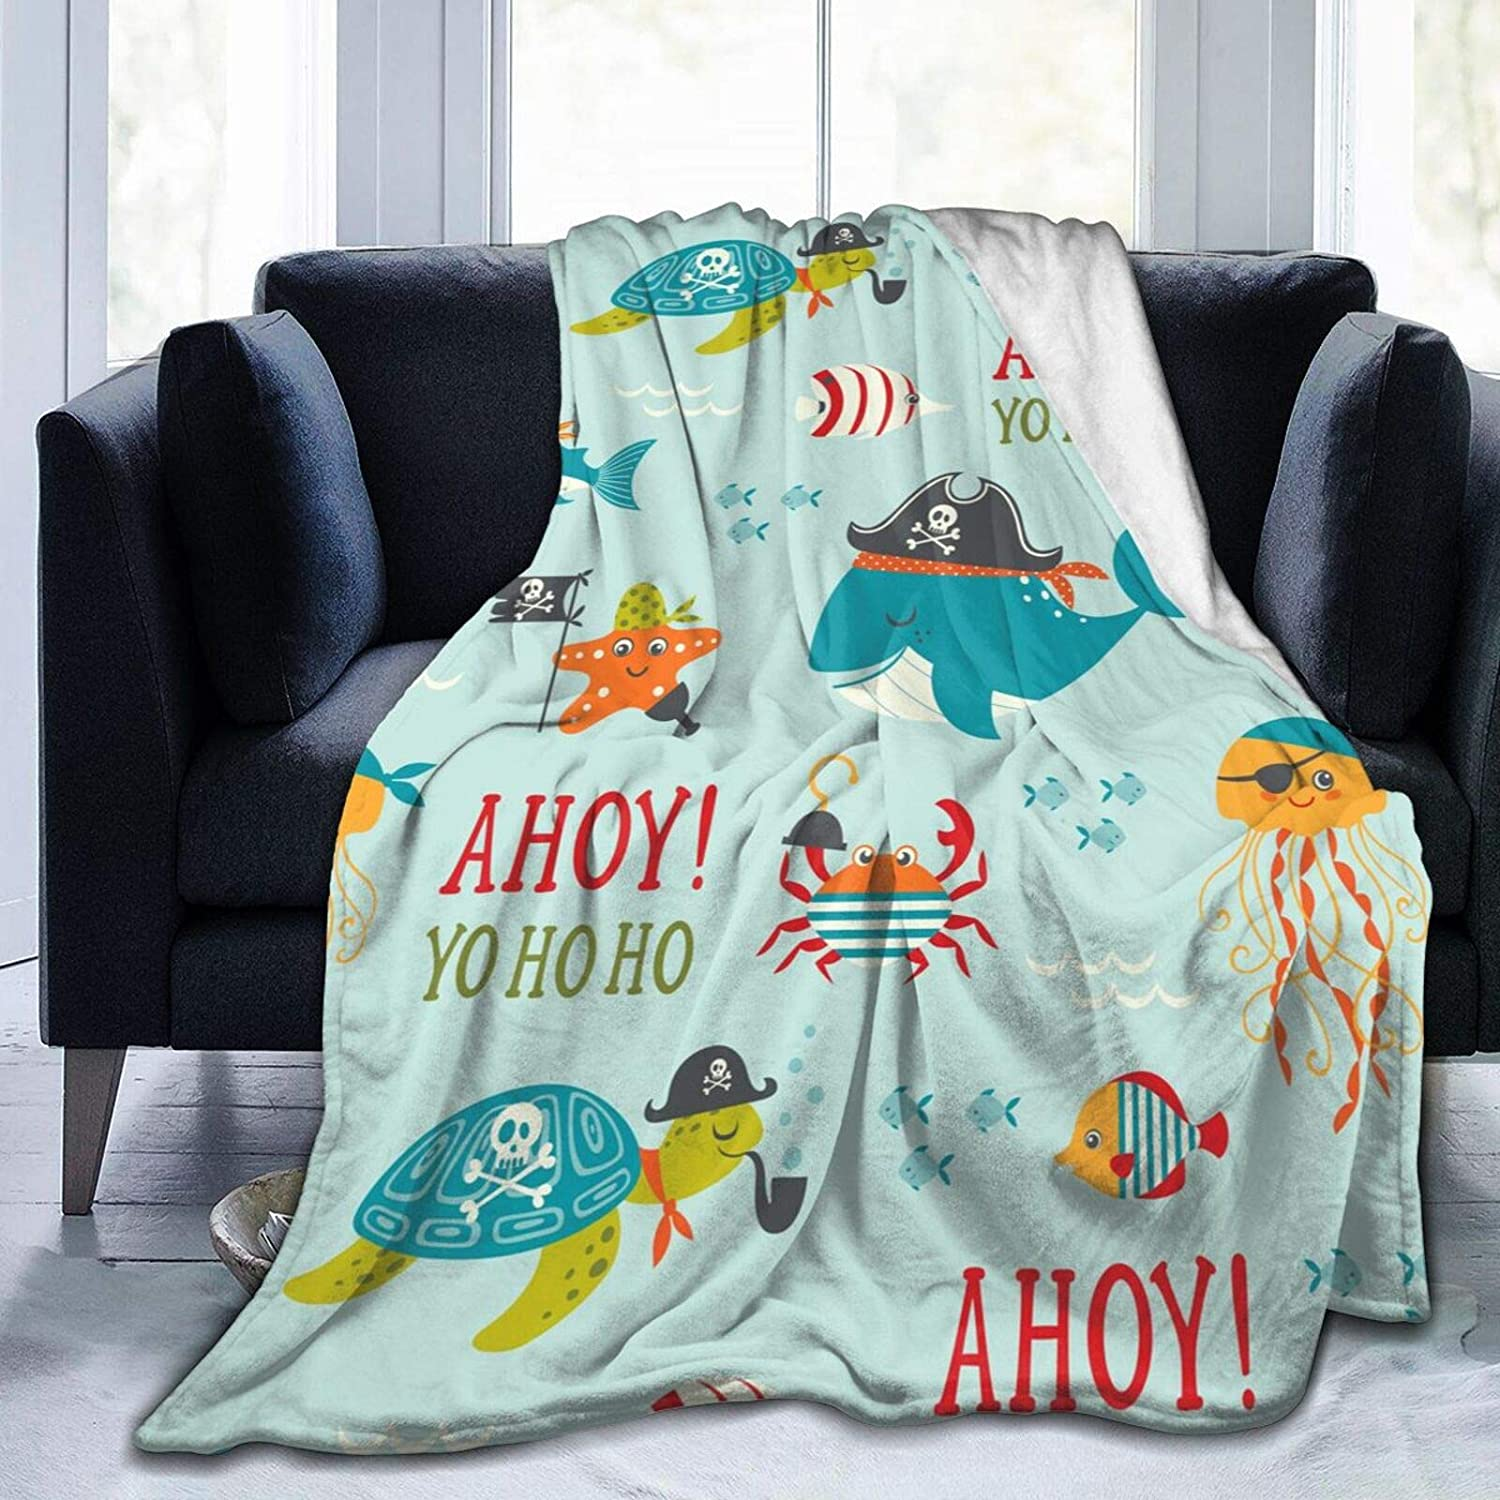 Fehuew Flannel Twin Size Blanket Childish Plu Jellyfish Ranking TOP2 Seamless Popular shop is the lowest price challenge